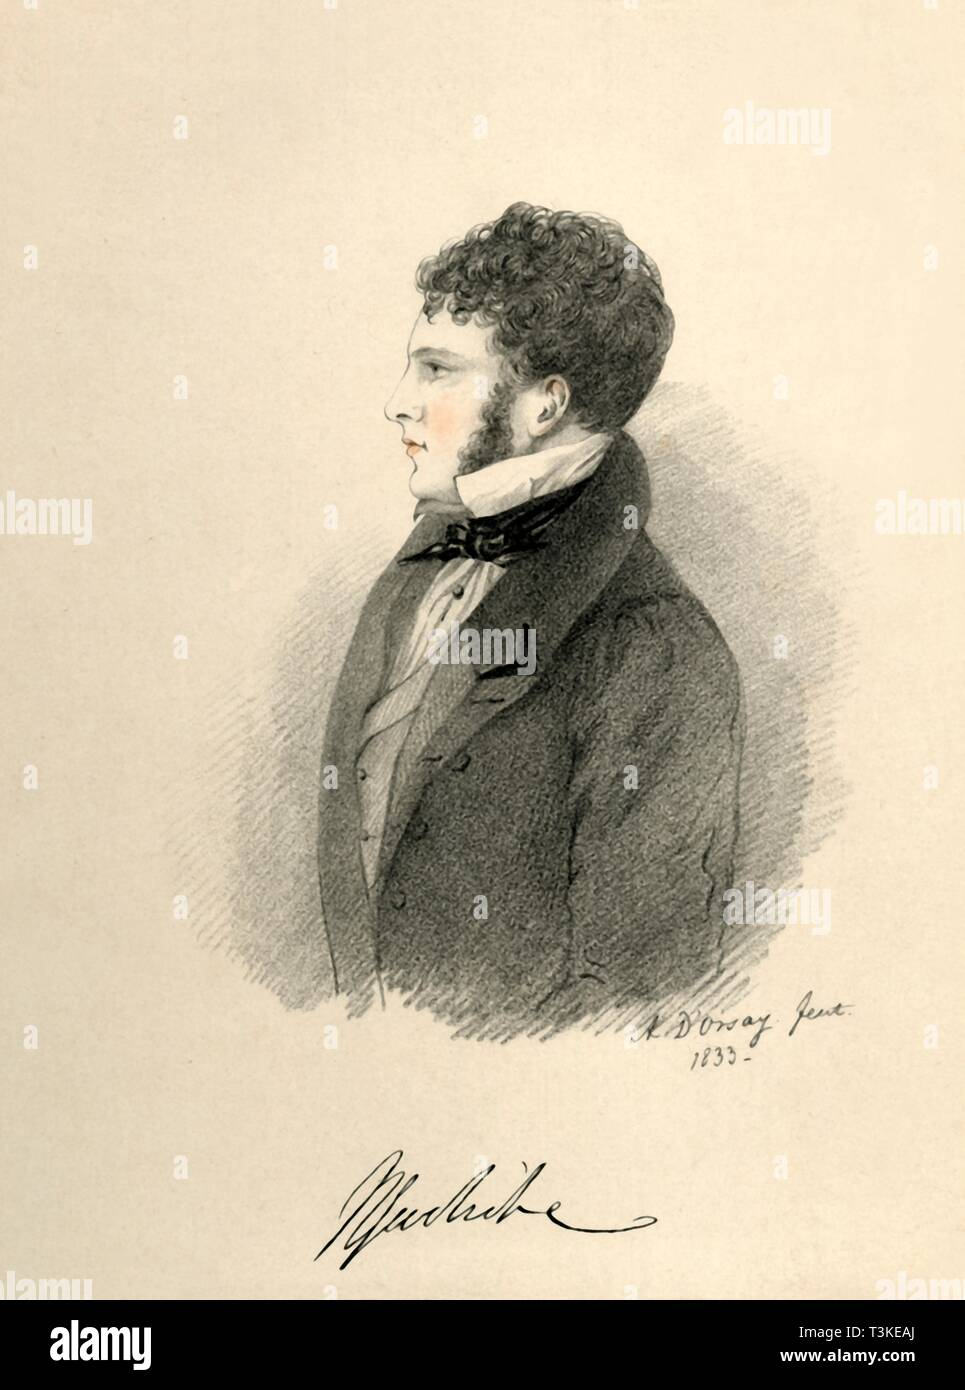 """'Sir Harry Goodricke', 1833. Portrait of British aristocrat Sir Henry James Goodricke (1797-1833). From """"Portraits by Count D'Orsay"""", an album assembled by Lady Georgiana Codrington. [1850s] Stock Photo"""